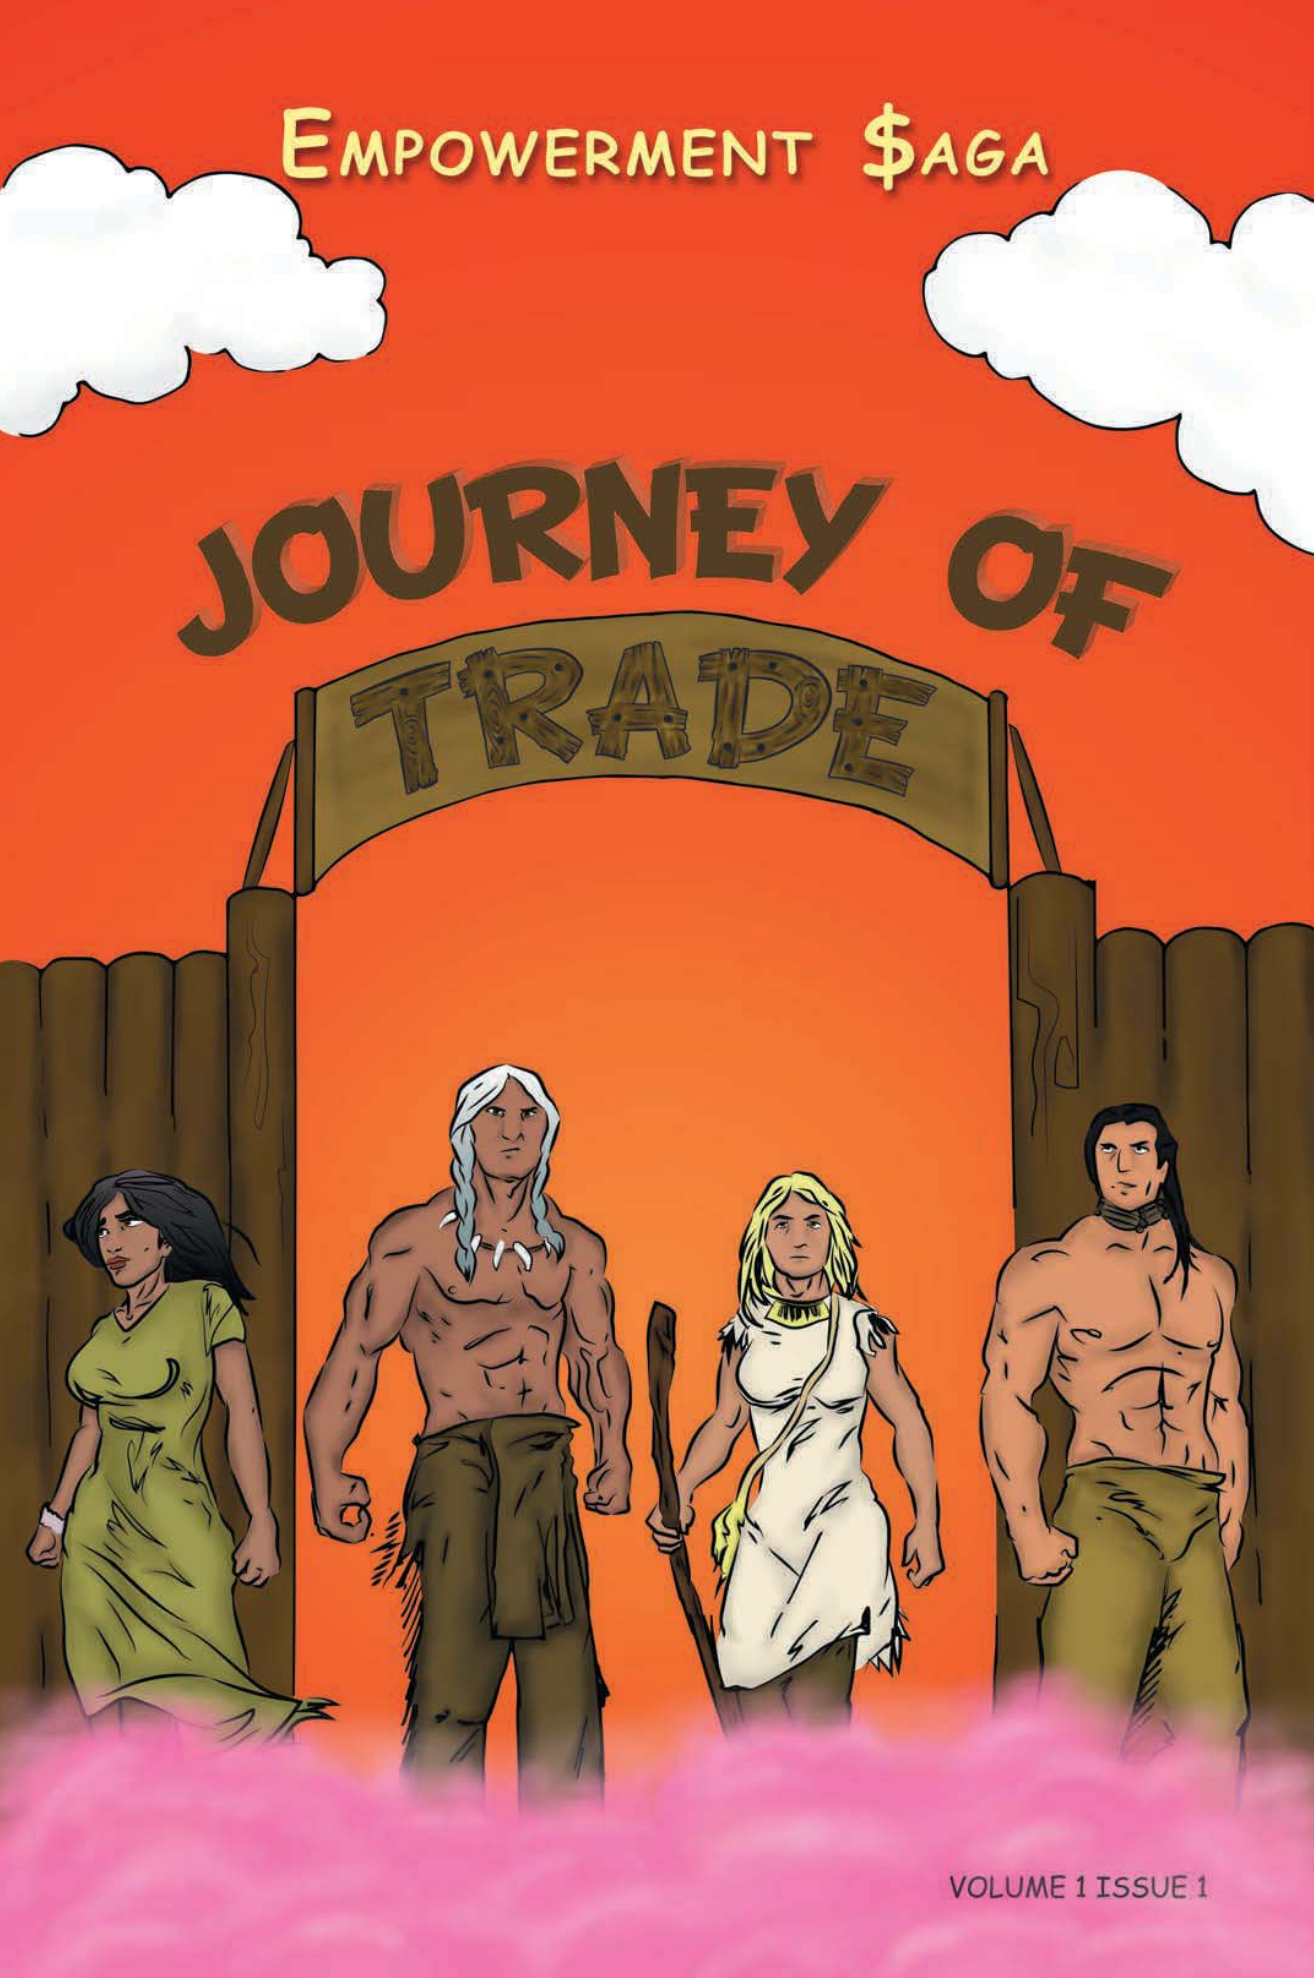 Book 1: Journey of Trade